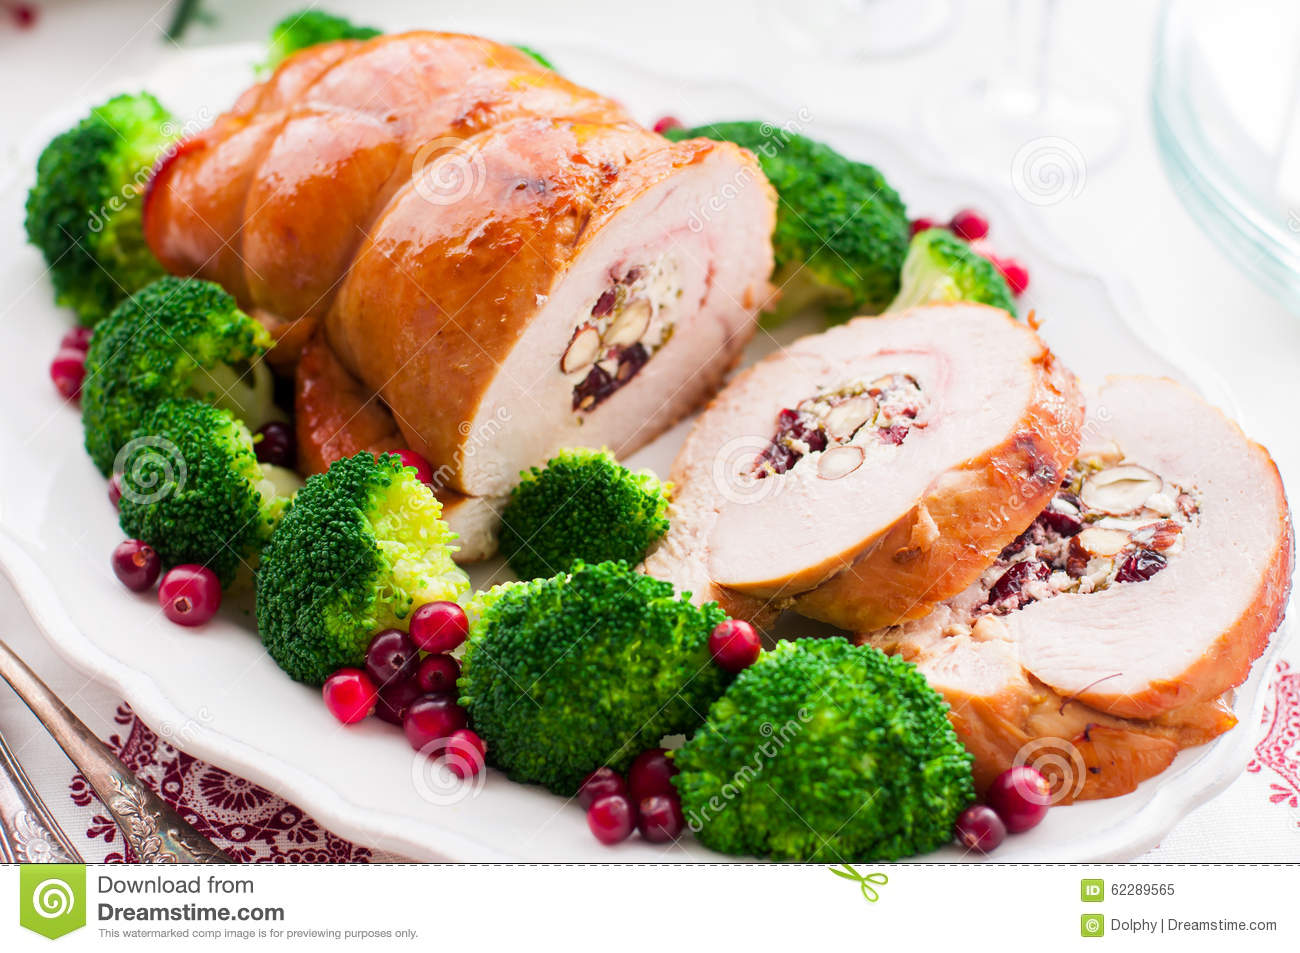 how to cook christmas turkey breast